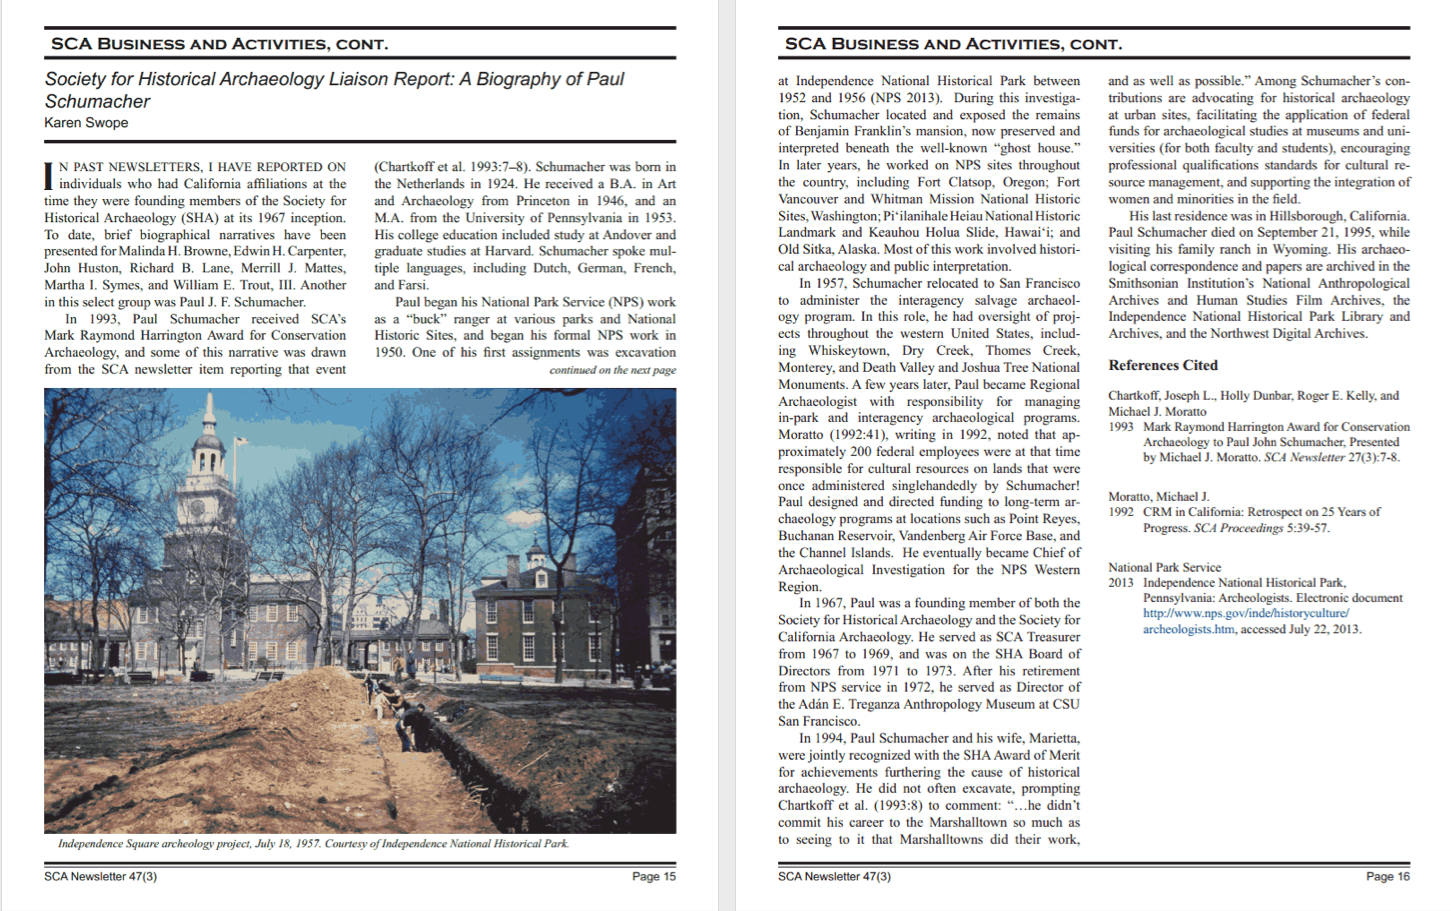 archaeological archaeology essay nature research Archaeology and archaeological resources pairs well with the  it concludes that  archaeologists seek to under-  why and how the study of the past has relevance  for  the breadth and nature of archaeological inquiry helps teachers move from  lectures to hands-on learning  template, two messages from this essay.